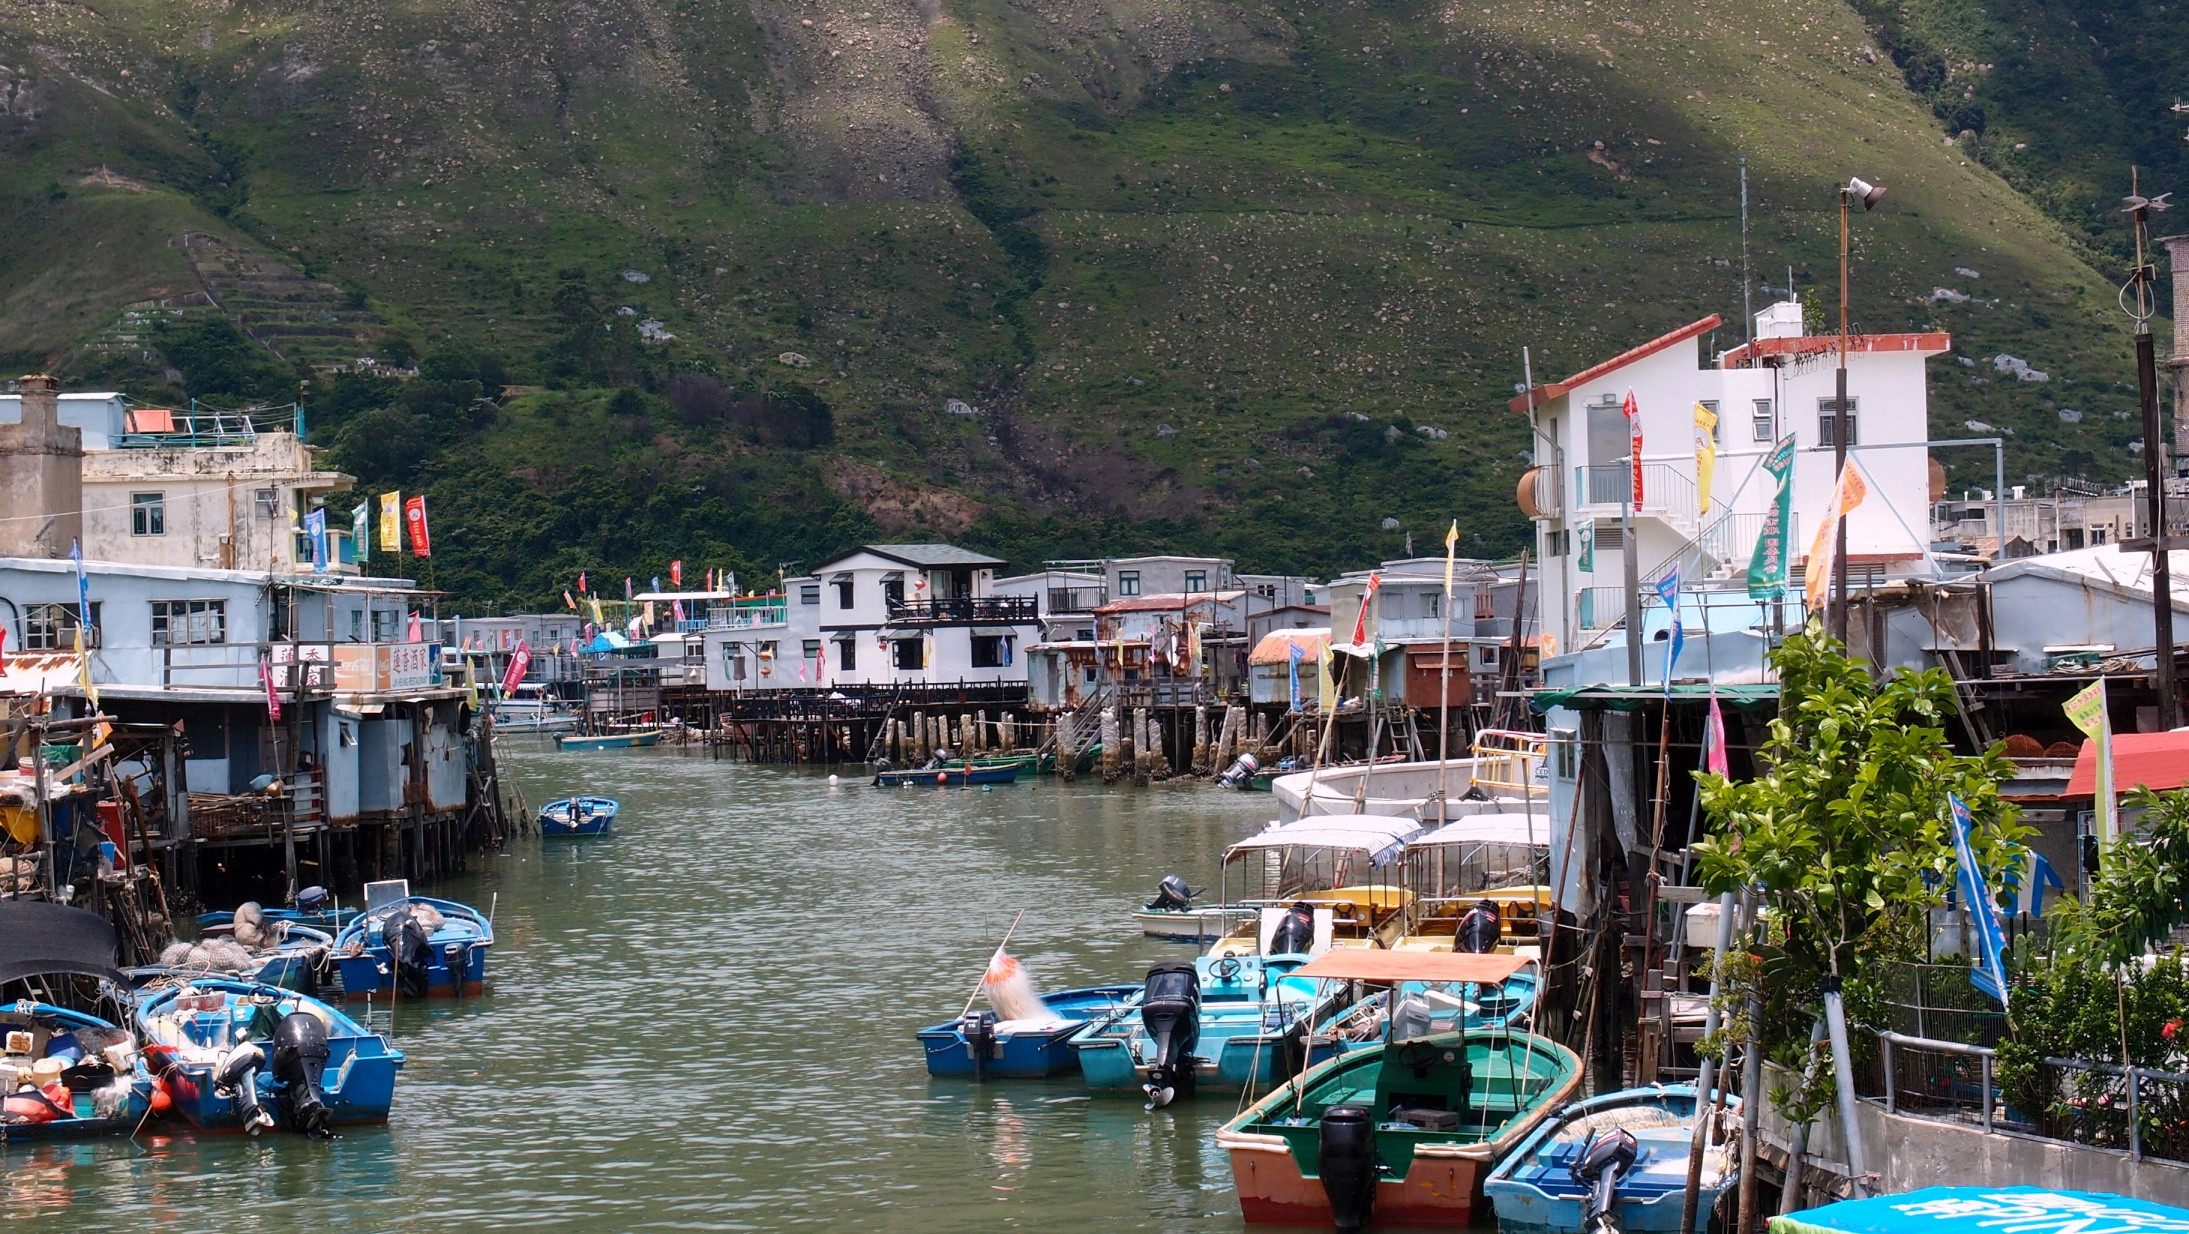 This is the Tai O fishing village, home to Snow White and the Seven Dwarfs and if you can find the time you should really visit, ignore the cheap boat tours and walk around - simply brilliant